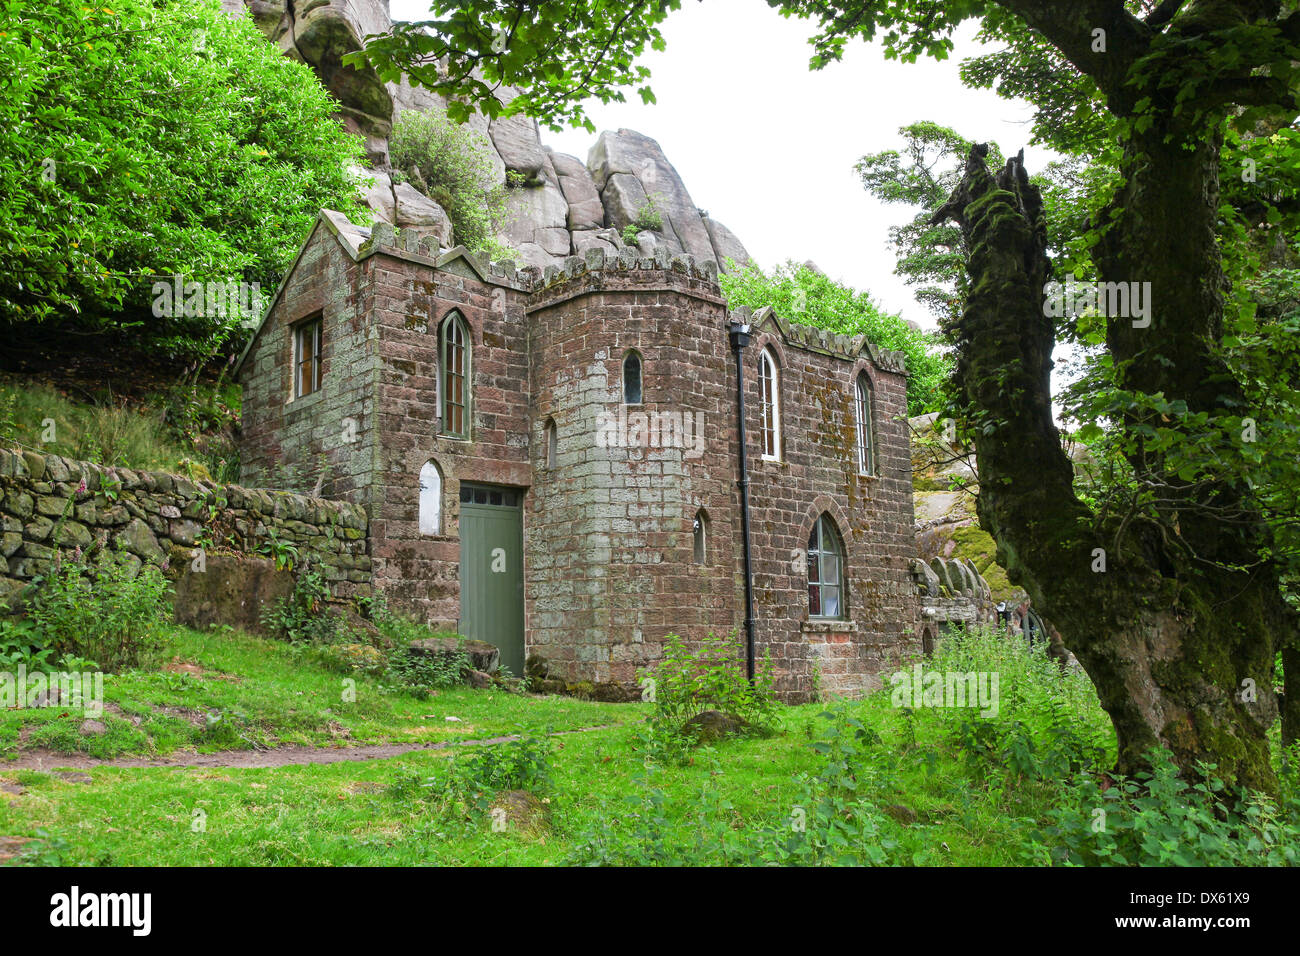 Rockhall Cottage or the Don Whillans memorial hut at The Roaches Staffordshire Peak District Stock Photo